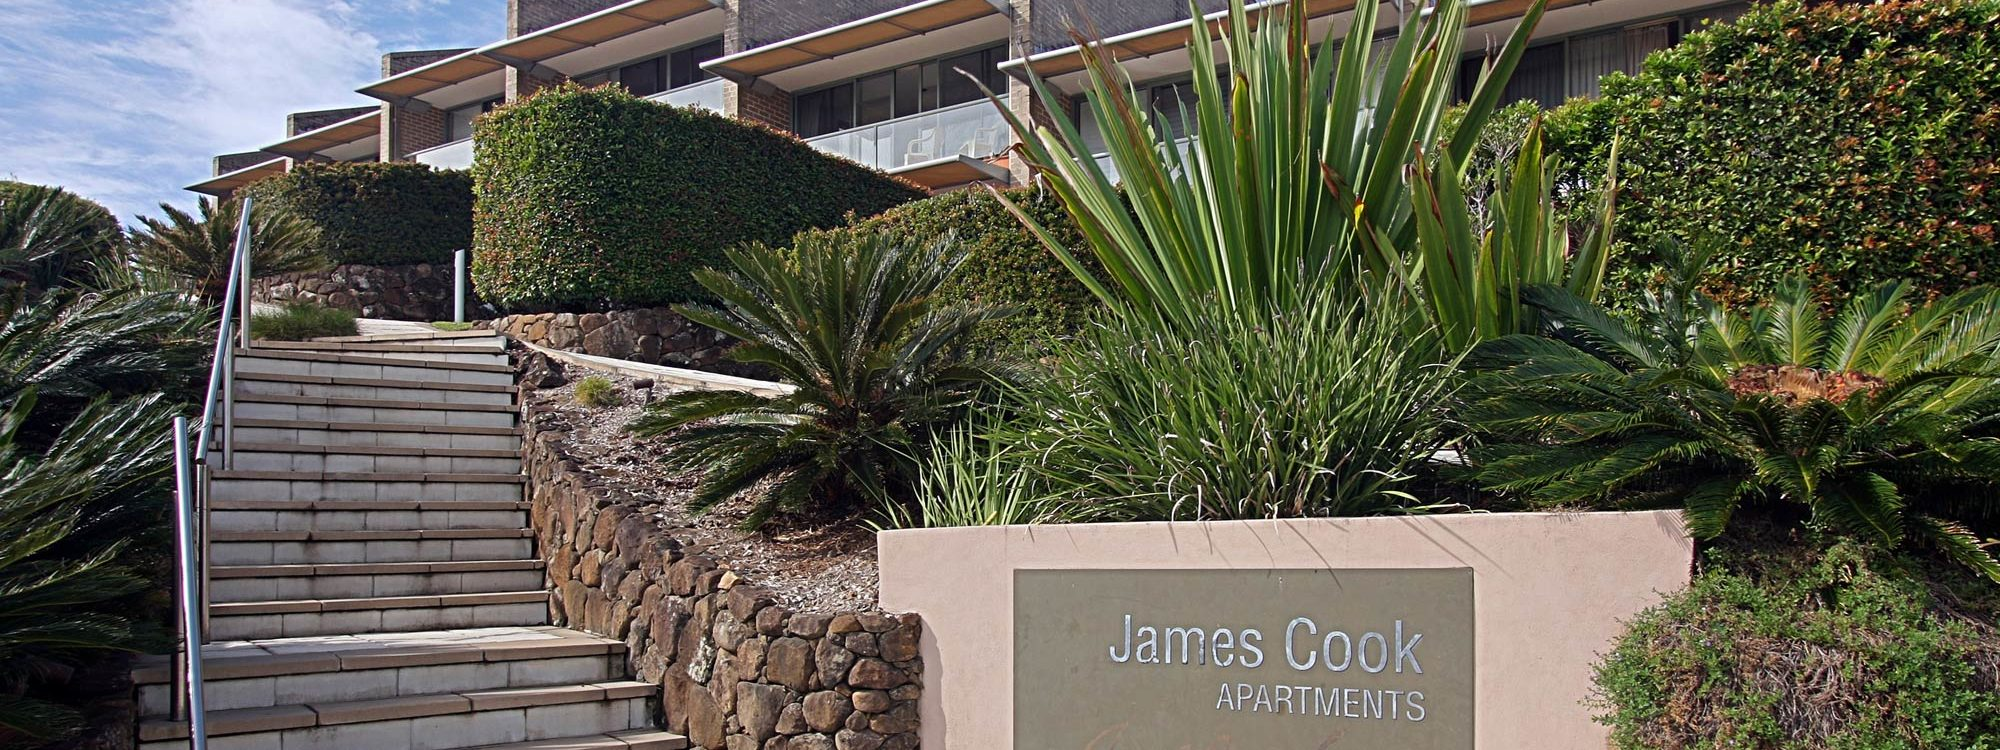 11 James Cook Apartment Clarkes Beach - Entrance stairs